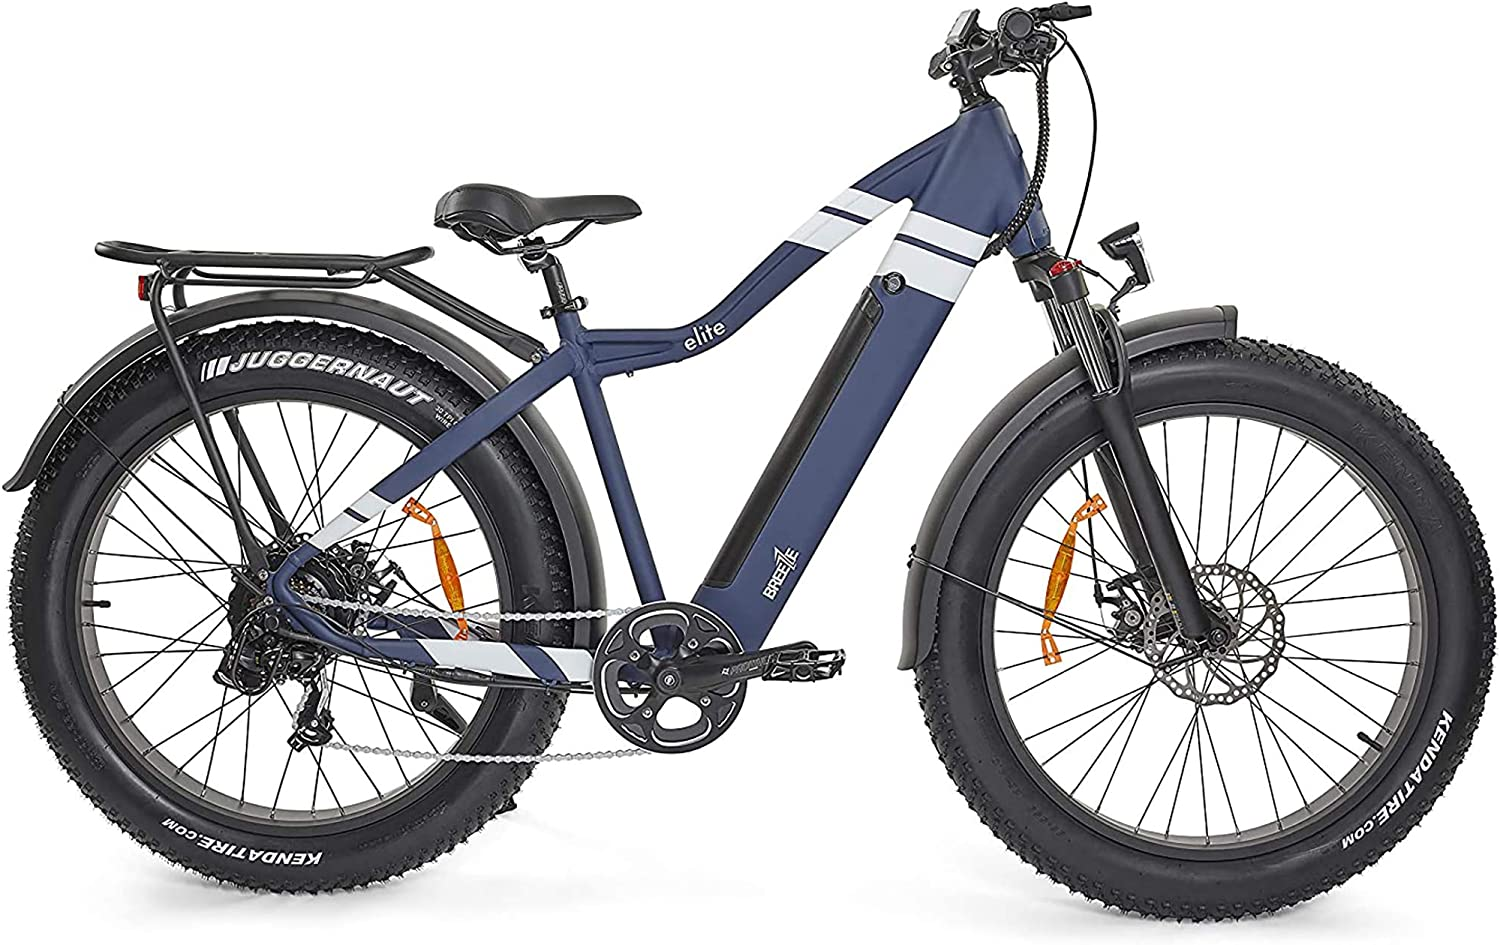 Electric 750 Powerful Off-Road Beach Cruiser